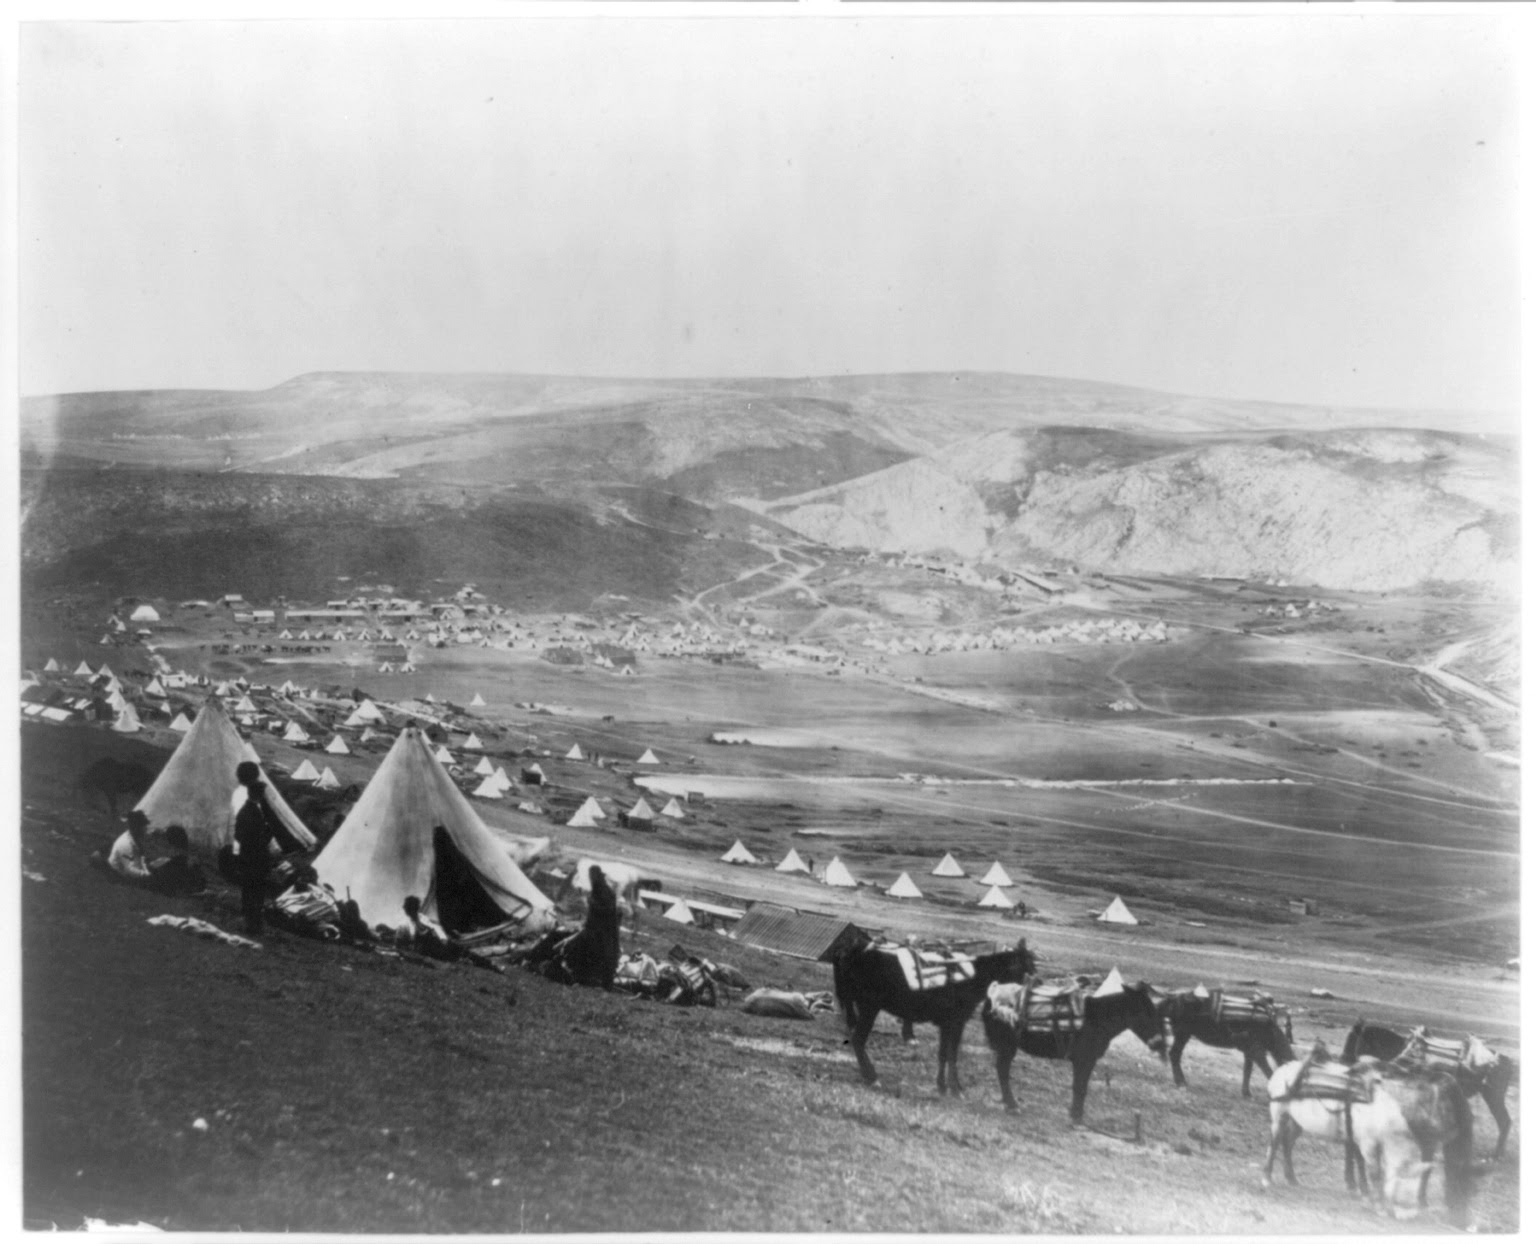 File:Cavalry camp near Balaklava 1855.3a34625r.jpg